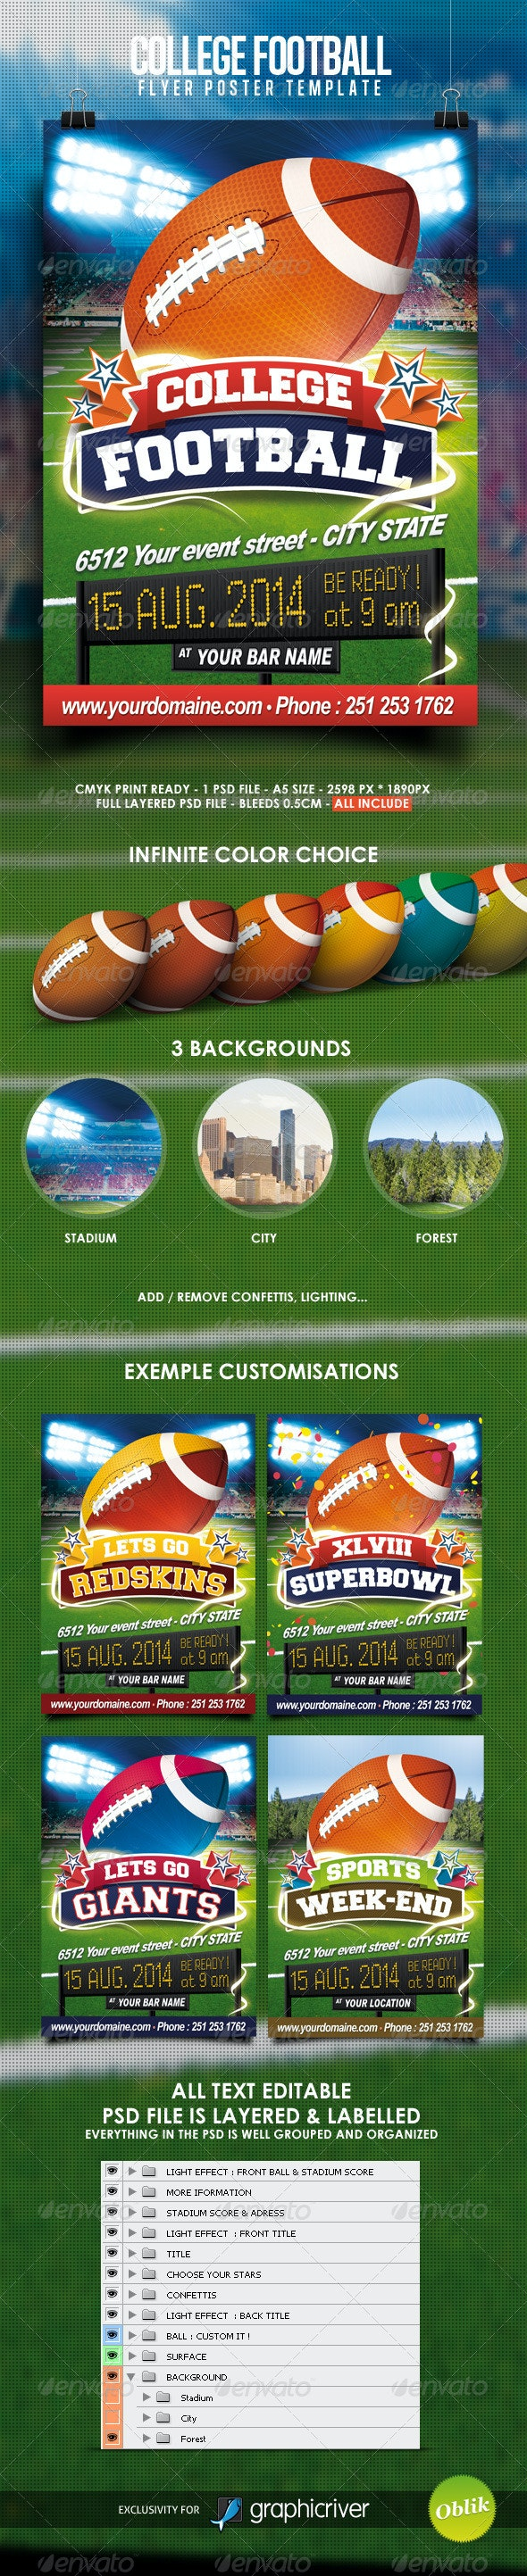 College Football Flyer - Sports Events